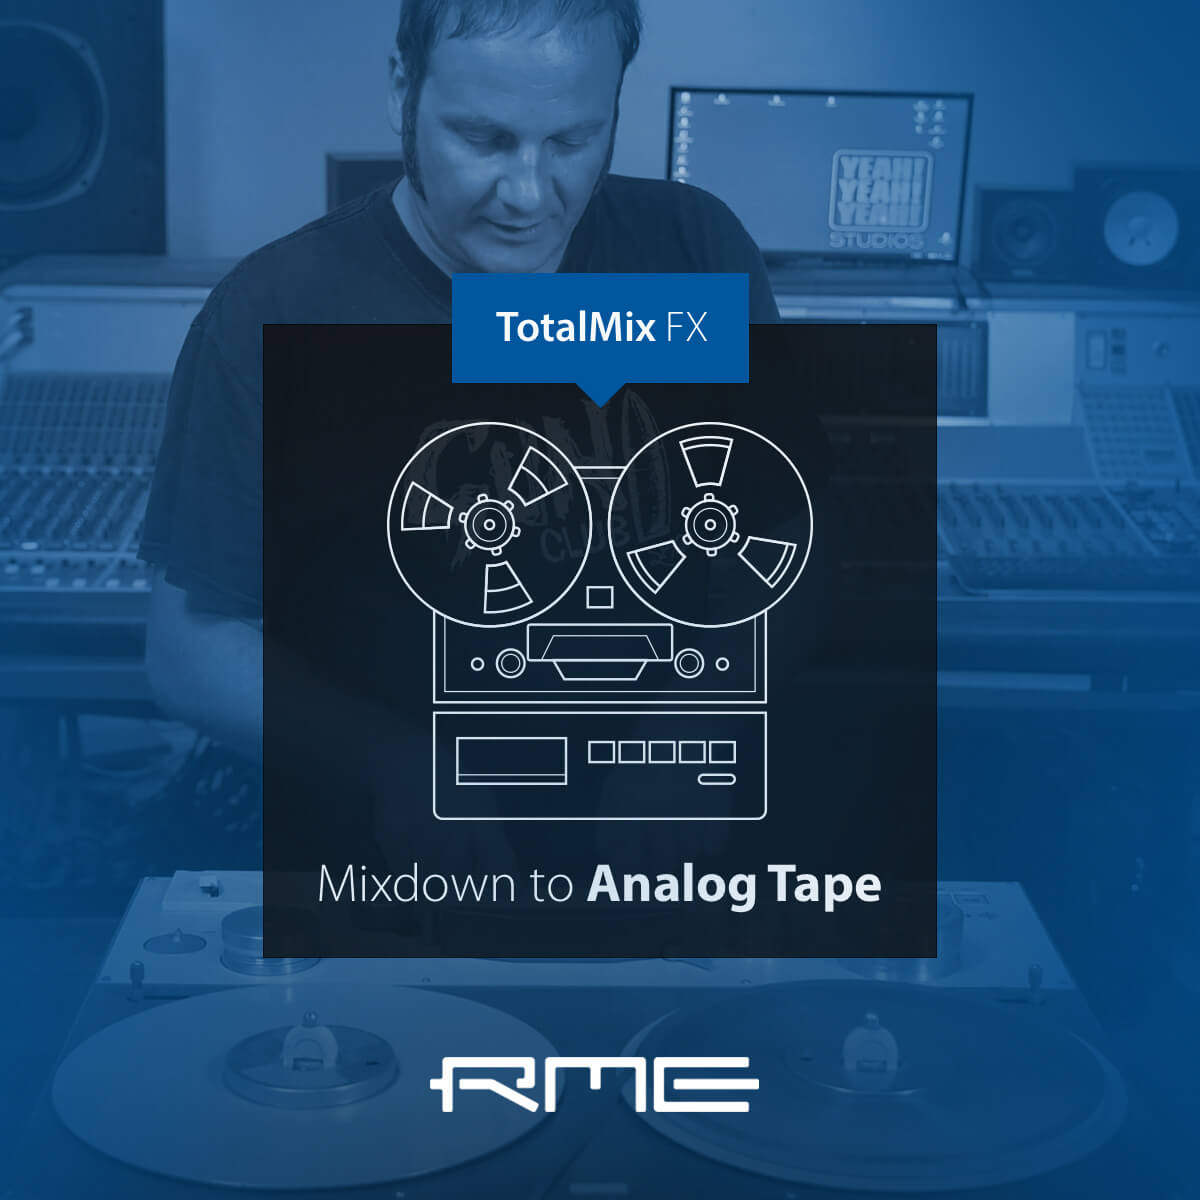 Mixdown to Analog Tape in TotalMix FX